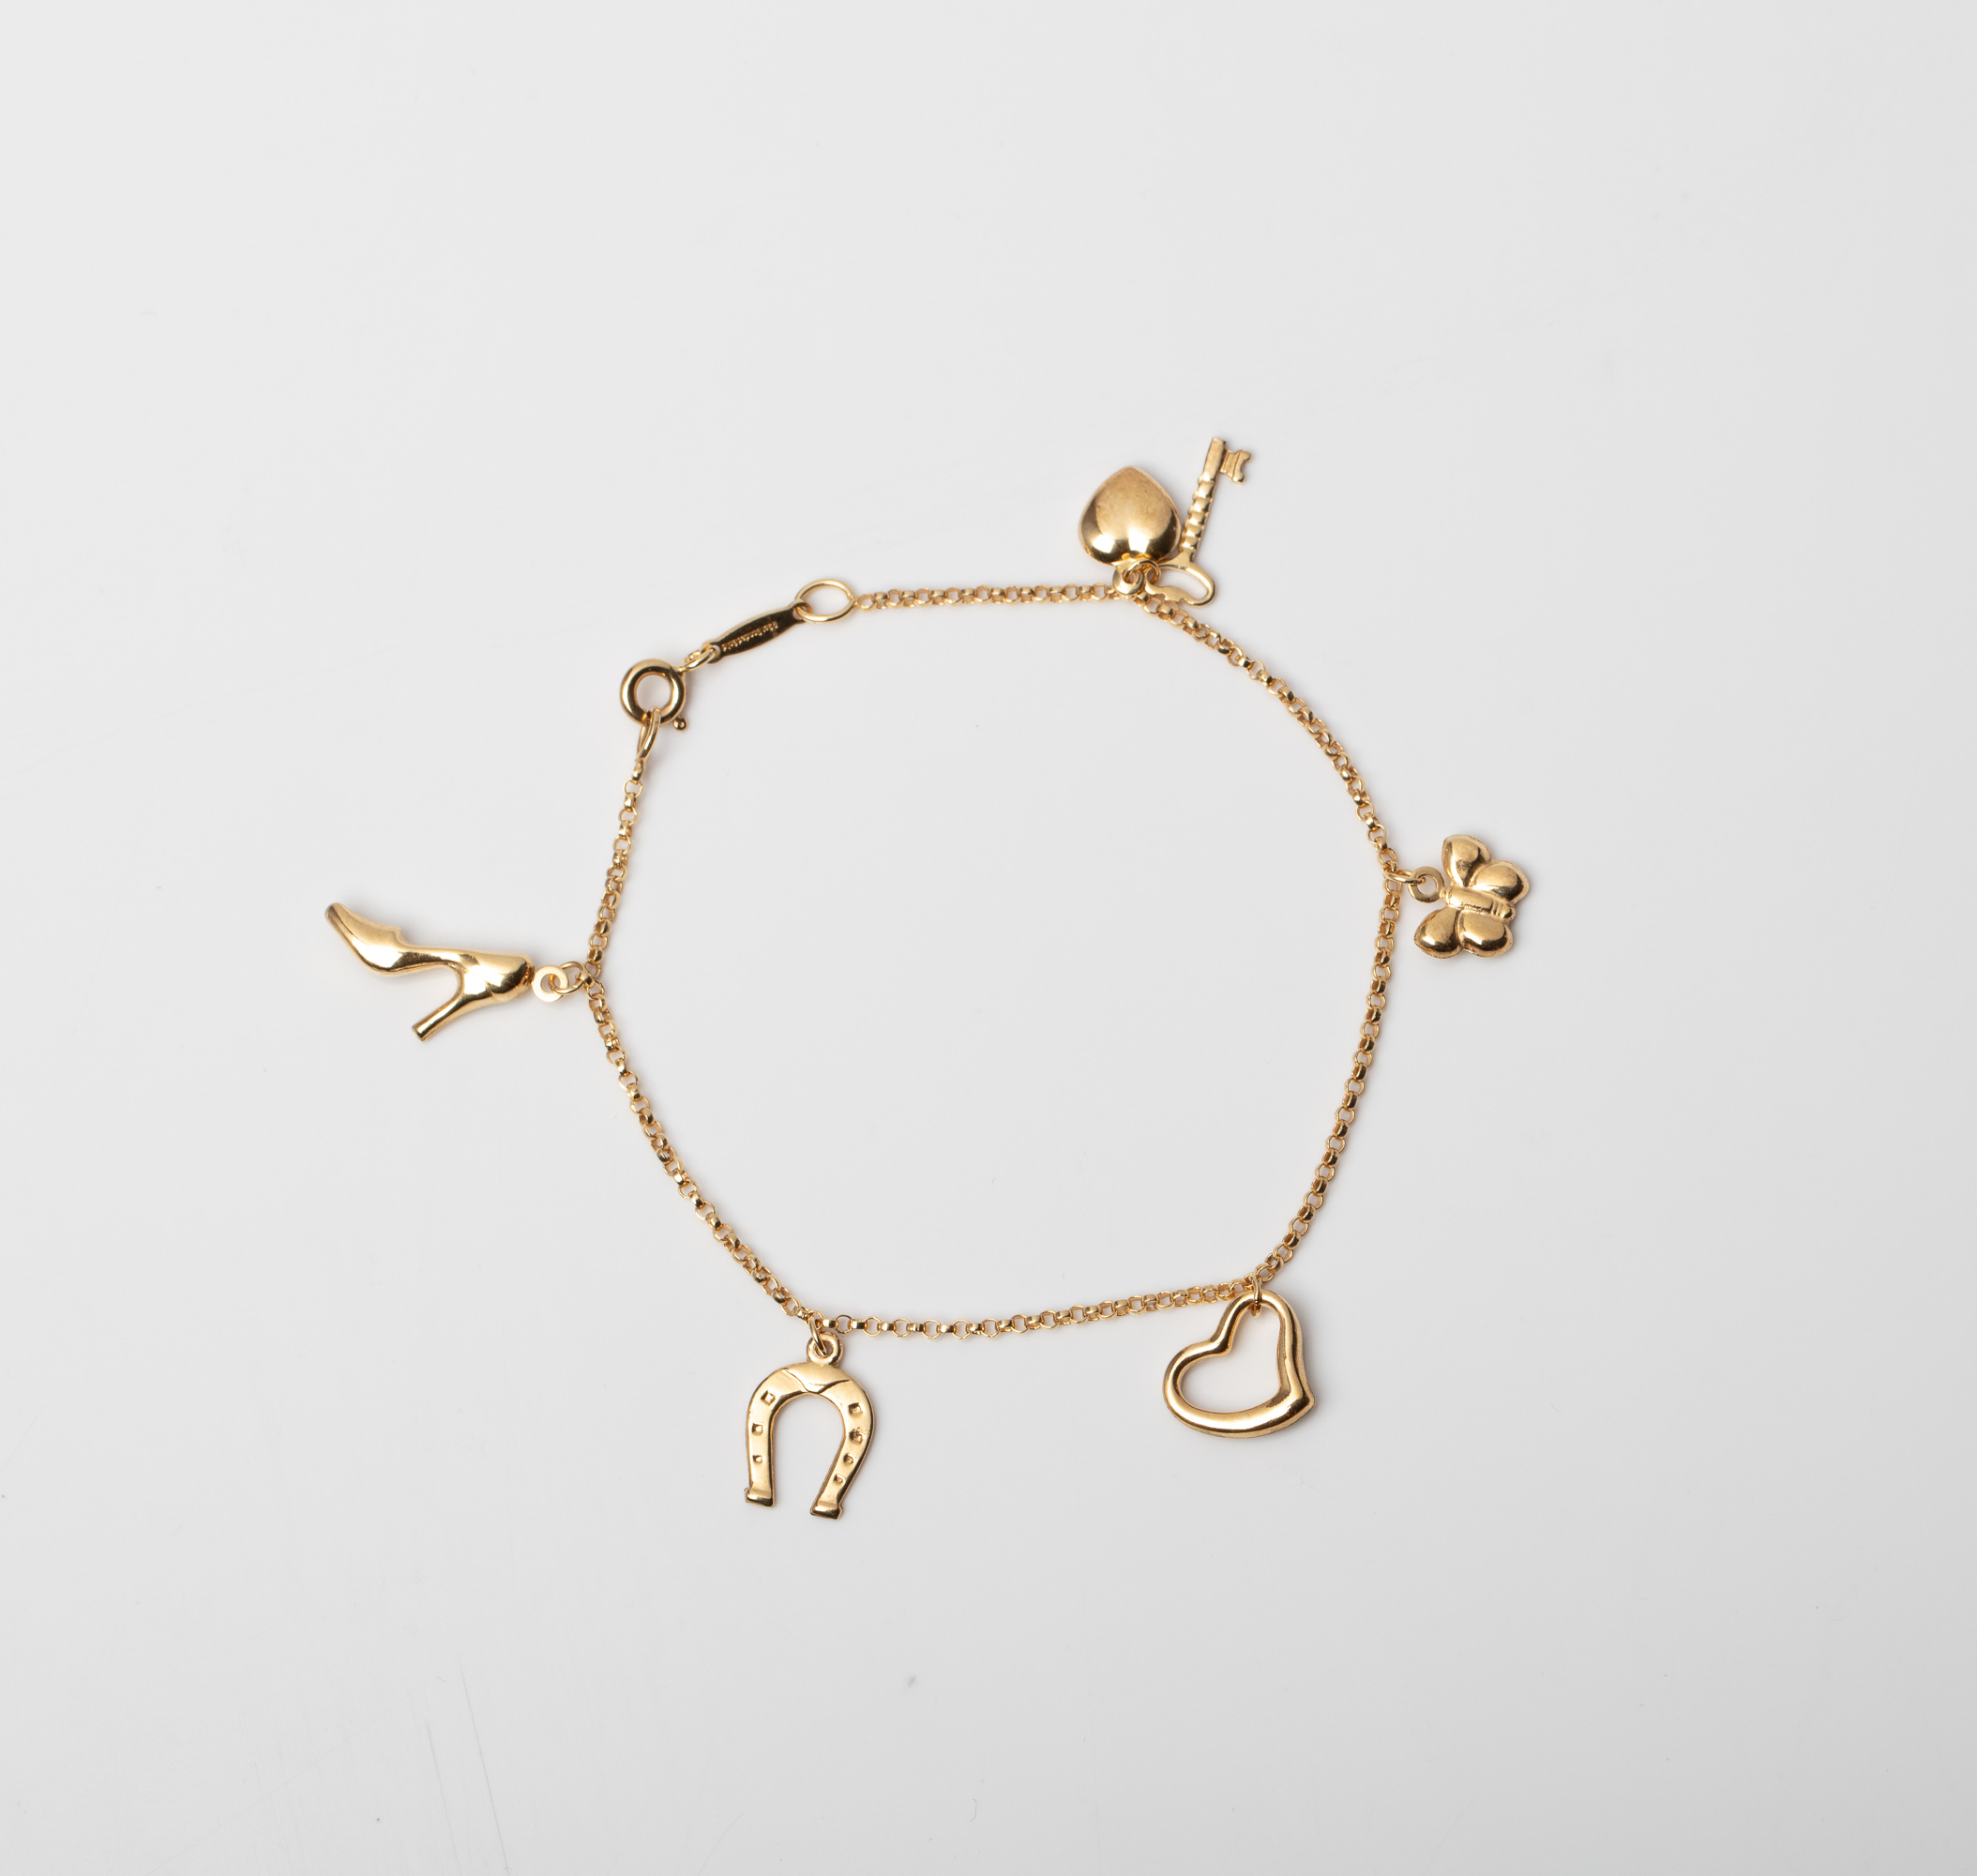 A 9CT GOLD & SILVER BONDED CHARM BRACELET